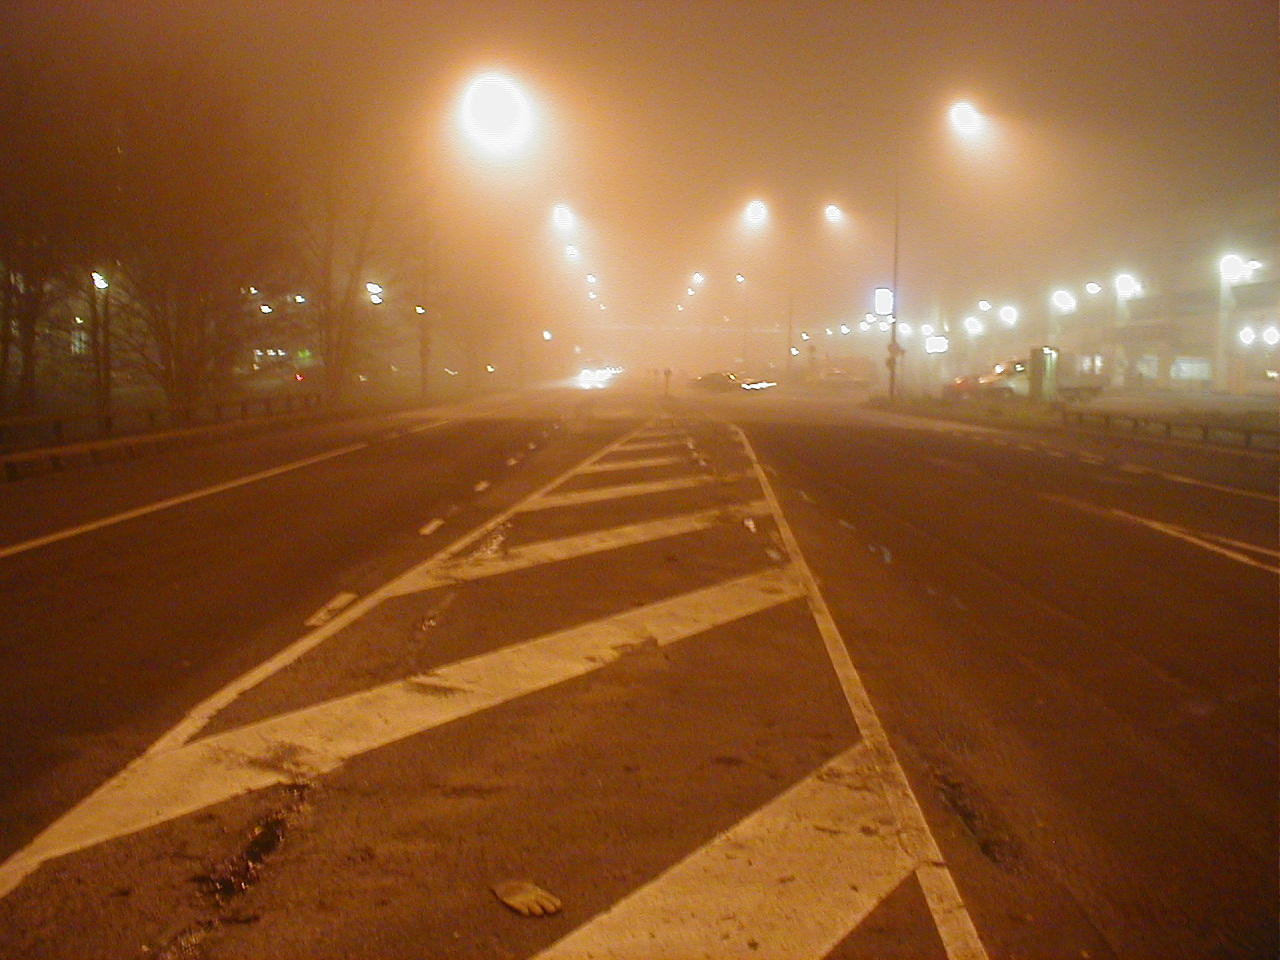 dario foggy highway road tarmac asphalt streetlights